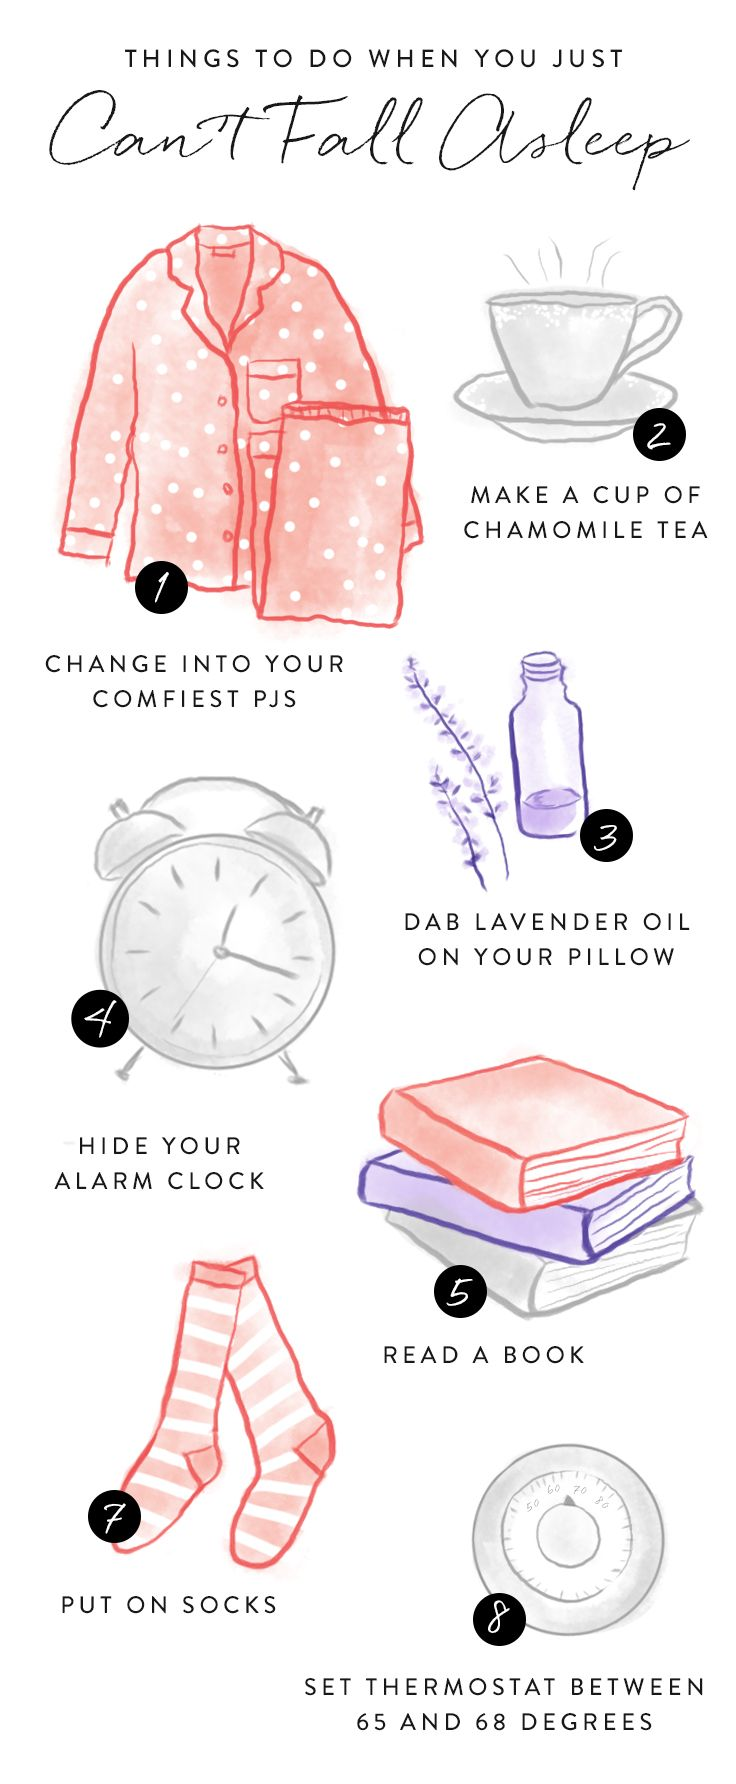 27 Soothing Things To Do When You Just Can't Fall Asleep